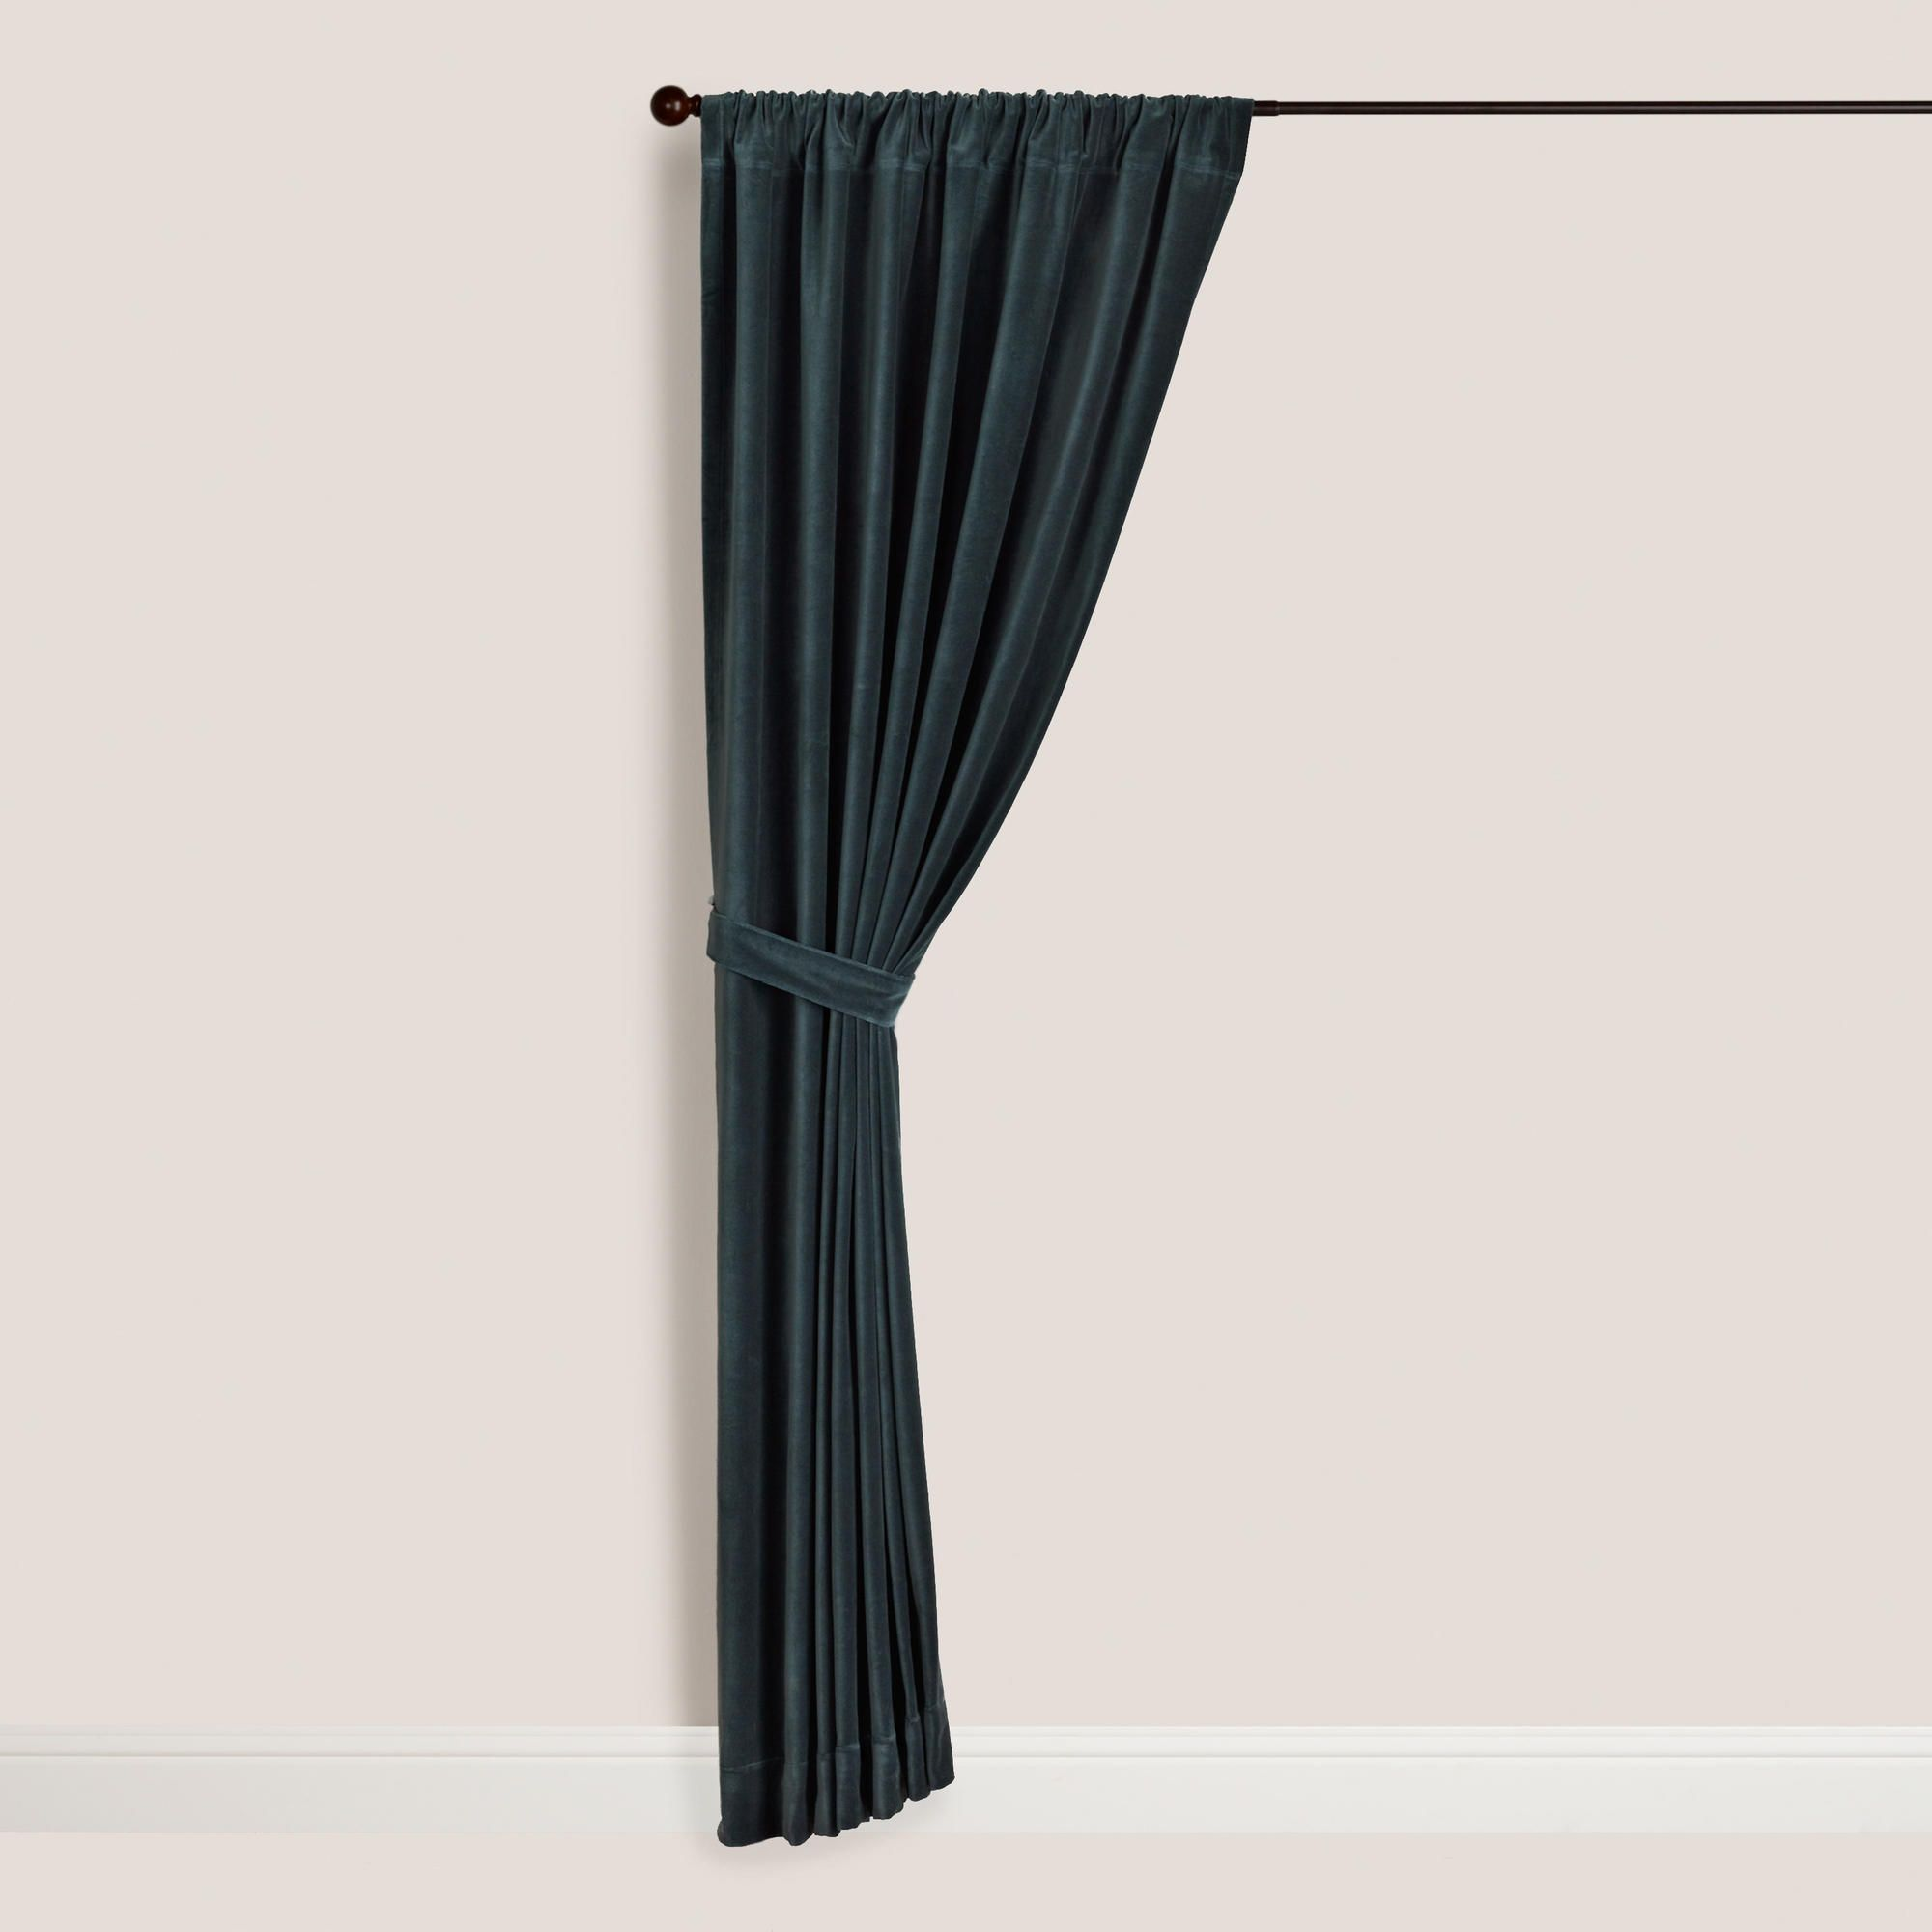 of rods panels navy decoration coral and world home for anthropologie curtains boho print maroon draped ombre linen design shade ideas gorgeous lovely curtain market floral rod bohemian velvet an sheer blackout